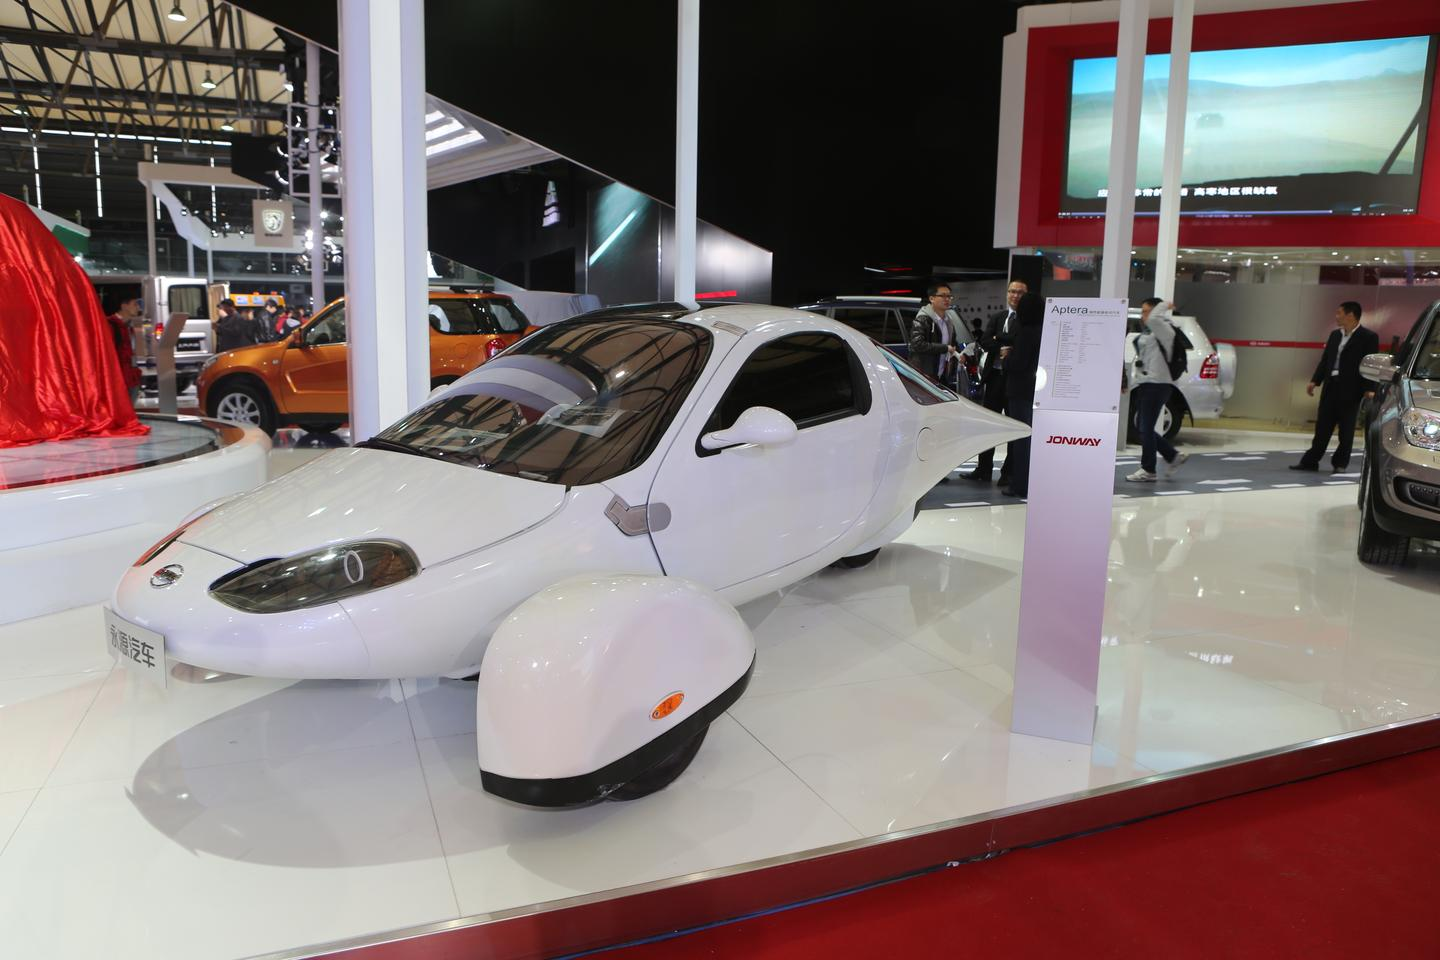 The Jonway Group's prototype version of the Aptera 2e, spied by Gizmag at Auto Shanghai 2013